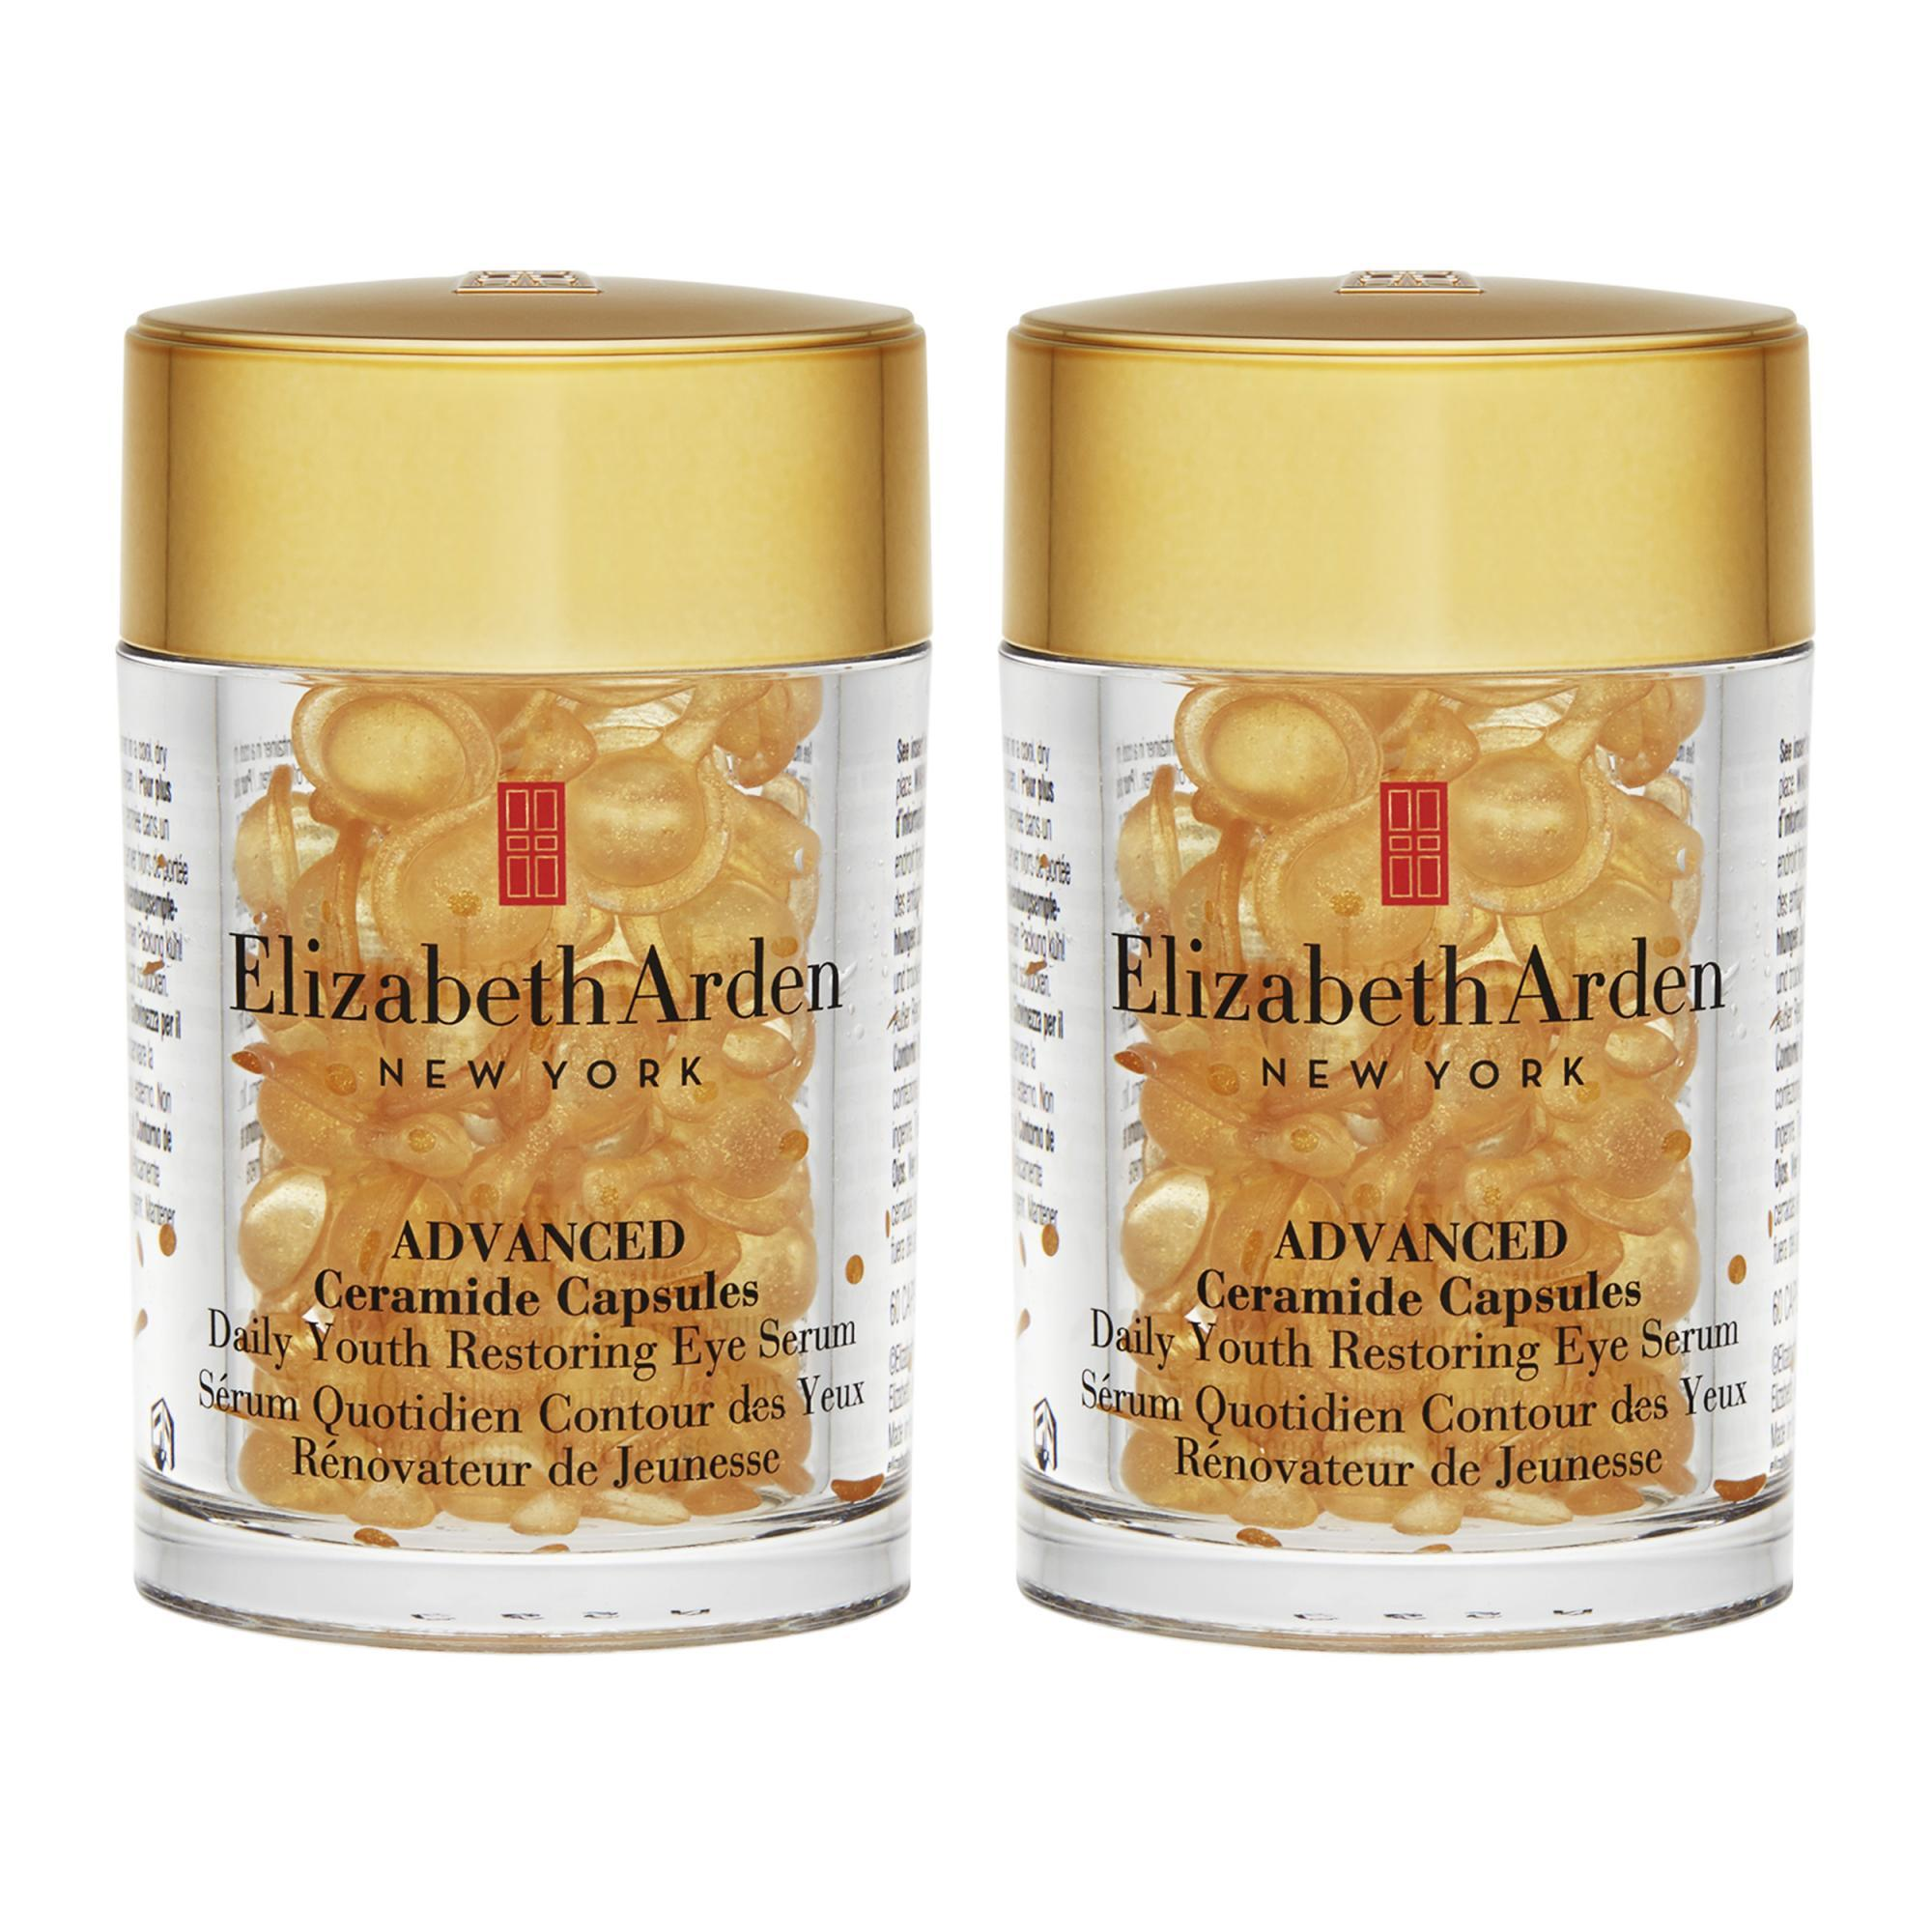 Compare Price 2 X Elizabeth Arden Advanced Ceramide Capsules Daily Youth Restoring Eye Serum 60Capsules Intl Elizabeth Arden On Hong Kong Sar China